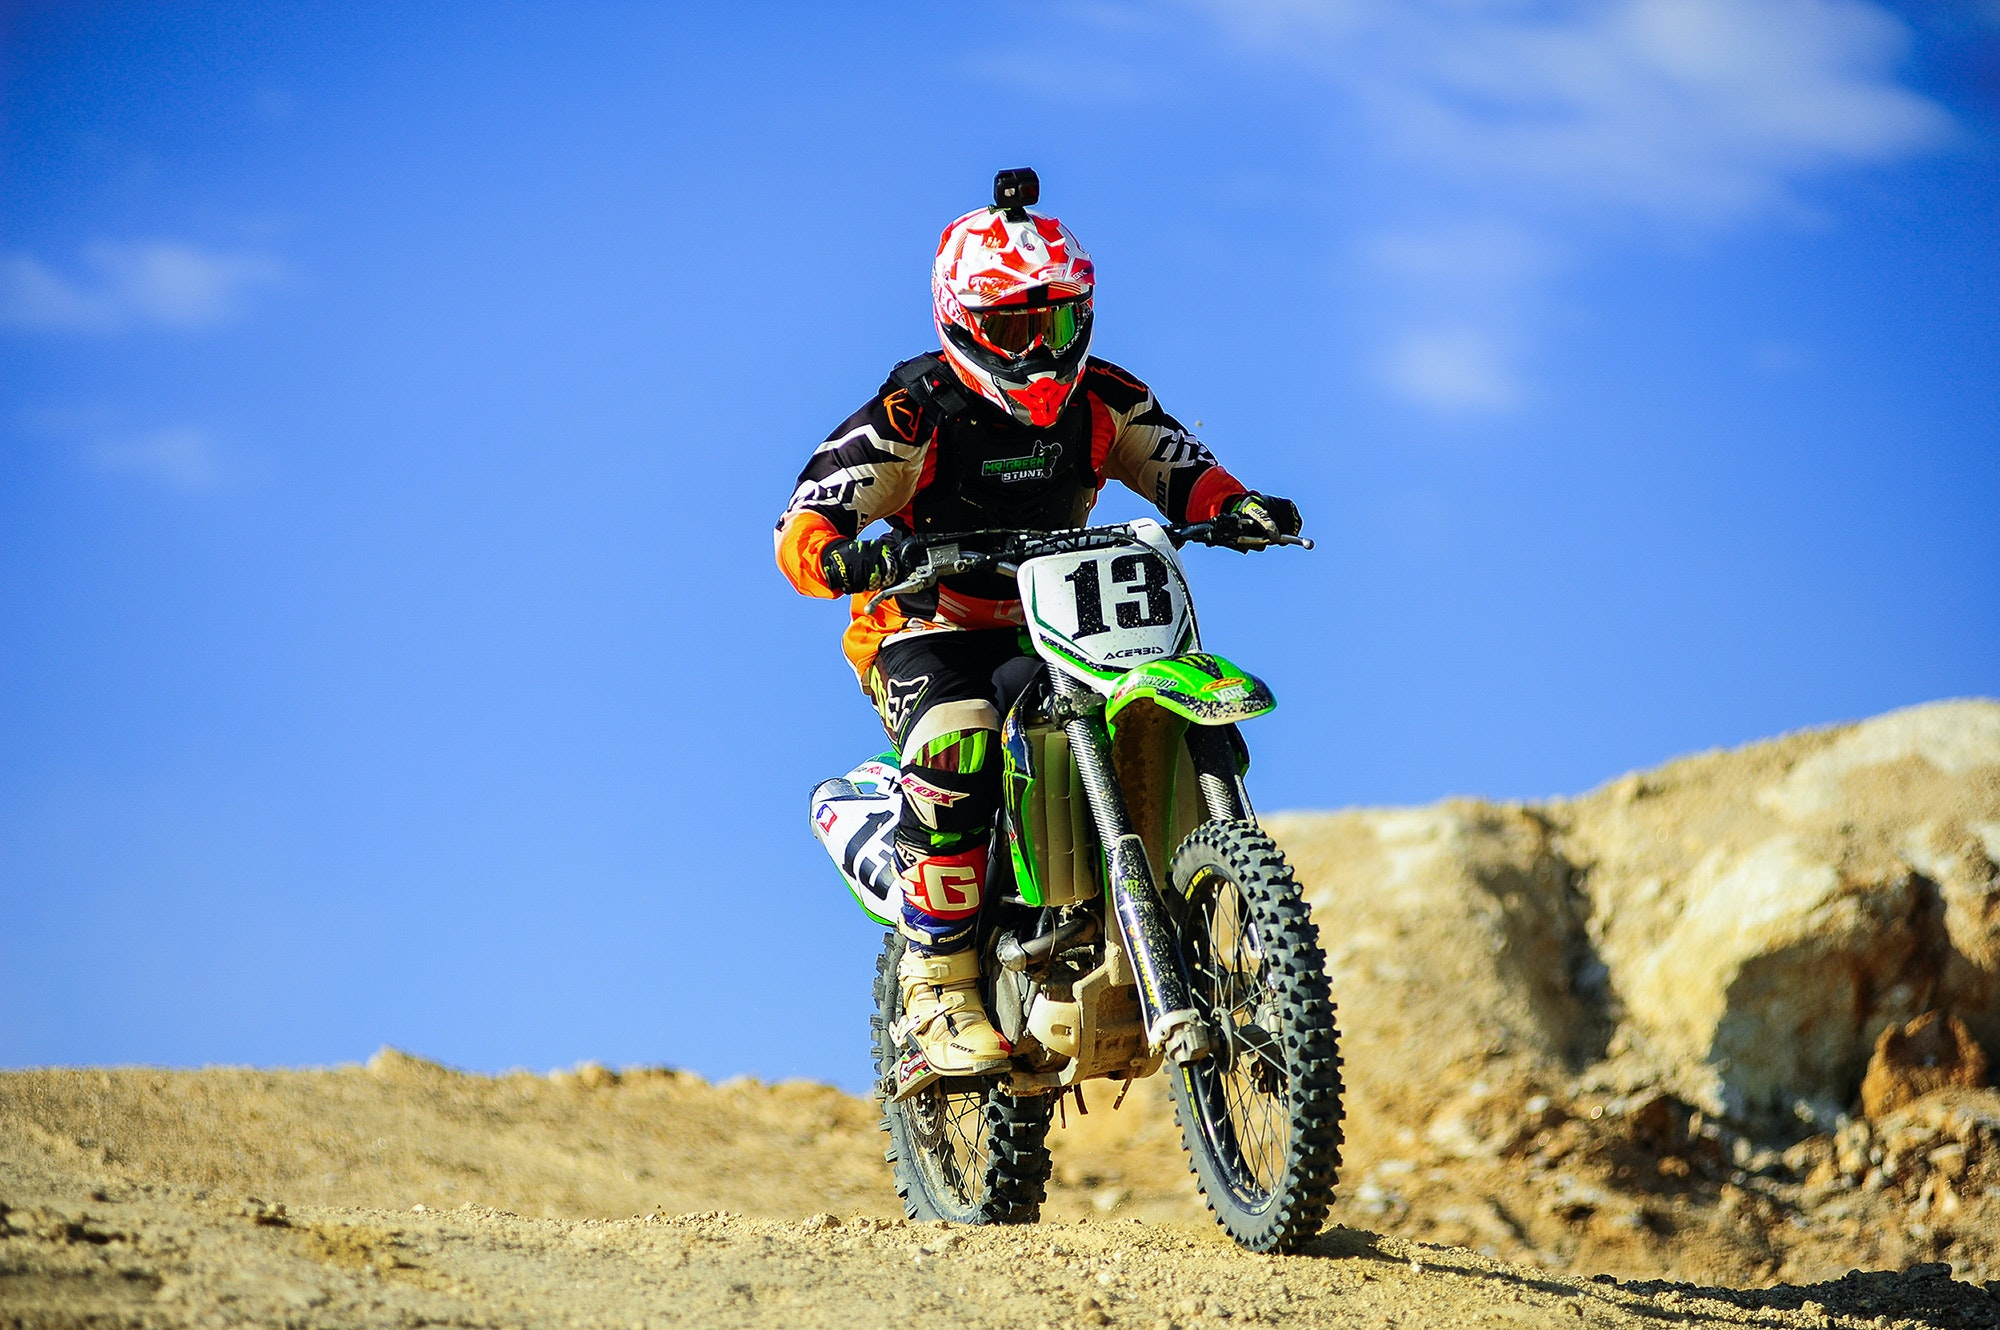 Man in White and Orange Motocross Overall Riding His Motocross Dirt Bike during Daytime · Free ...